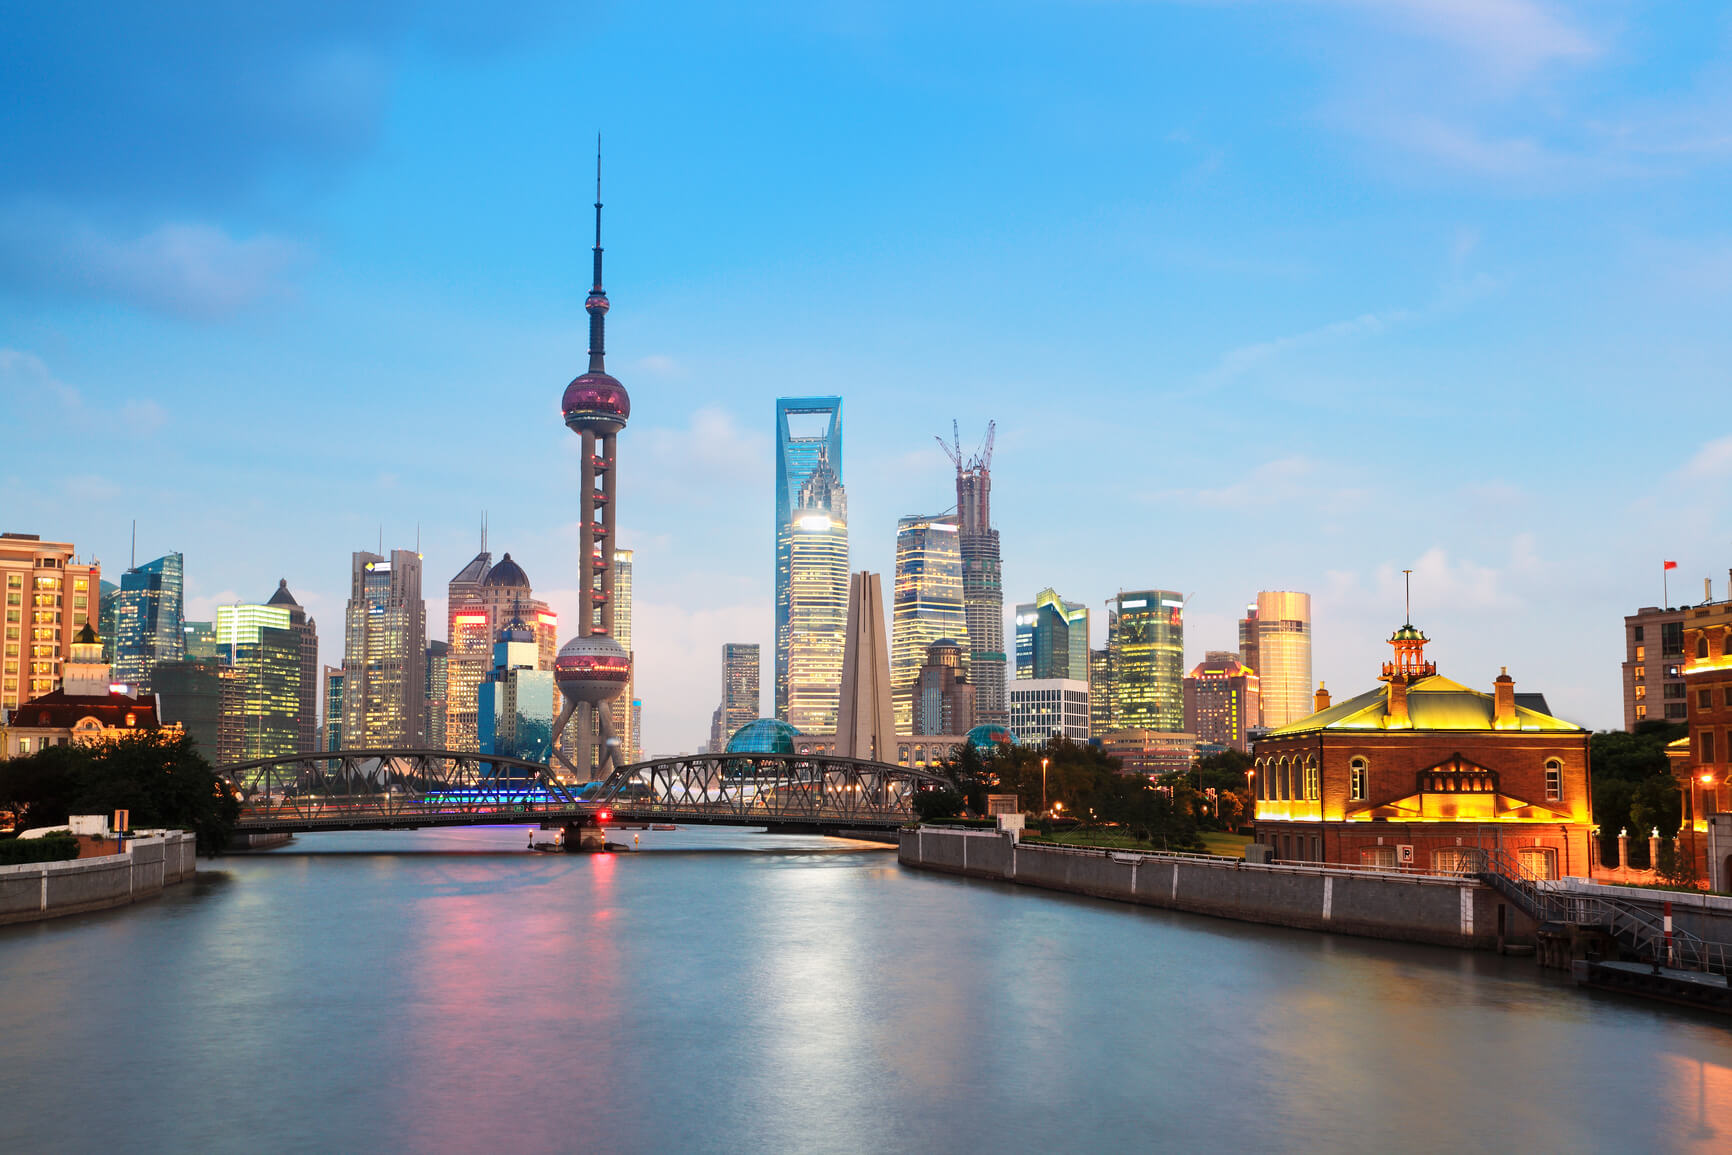 Charlotte, North Carolina to Shanghai, China for only $518 roundtrip